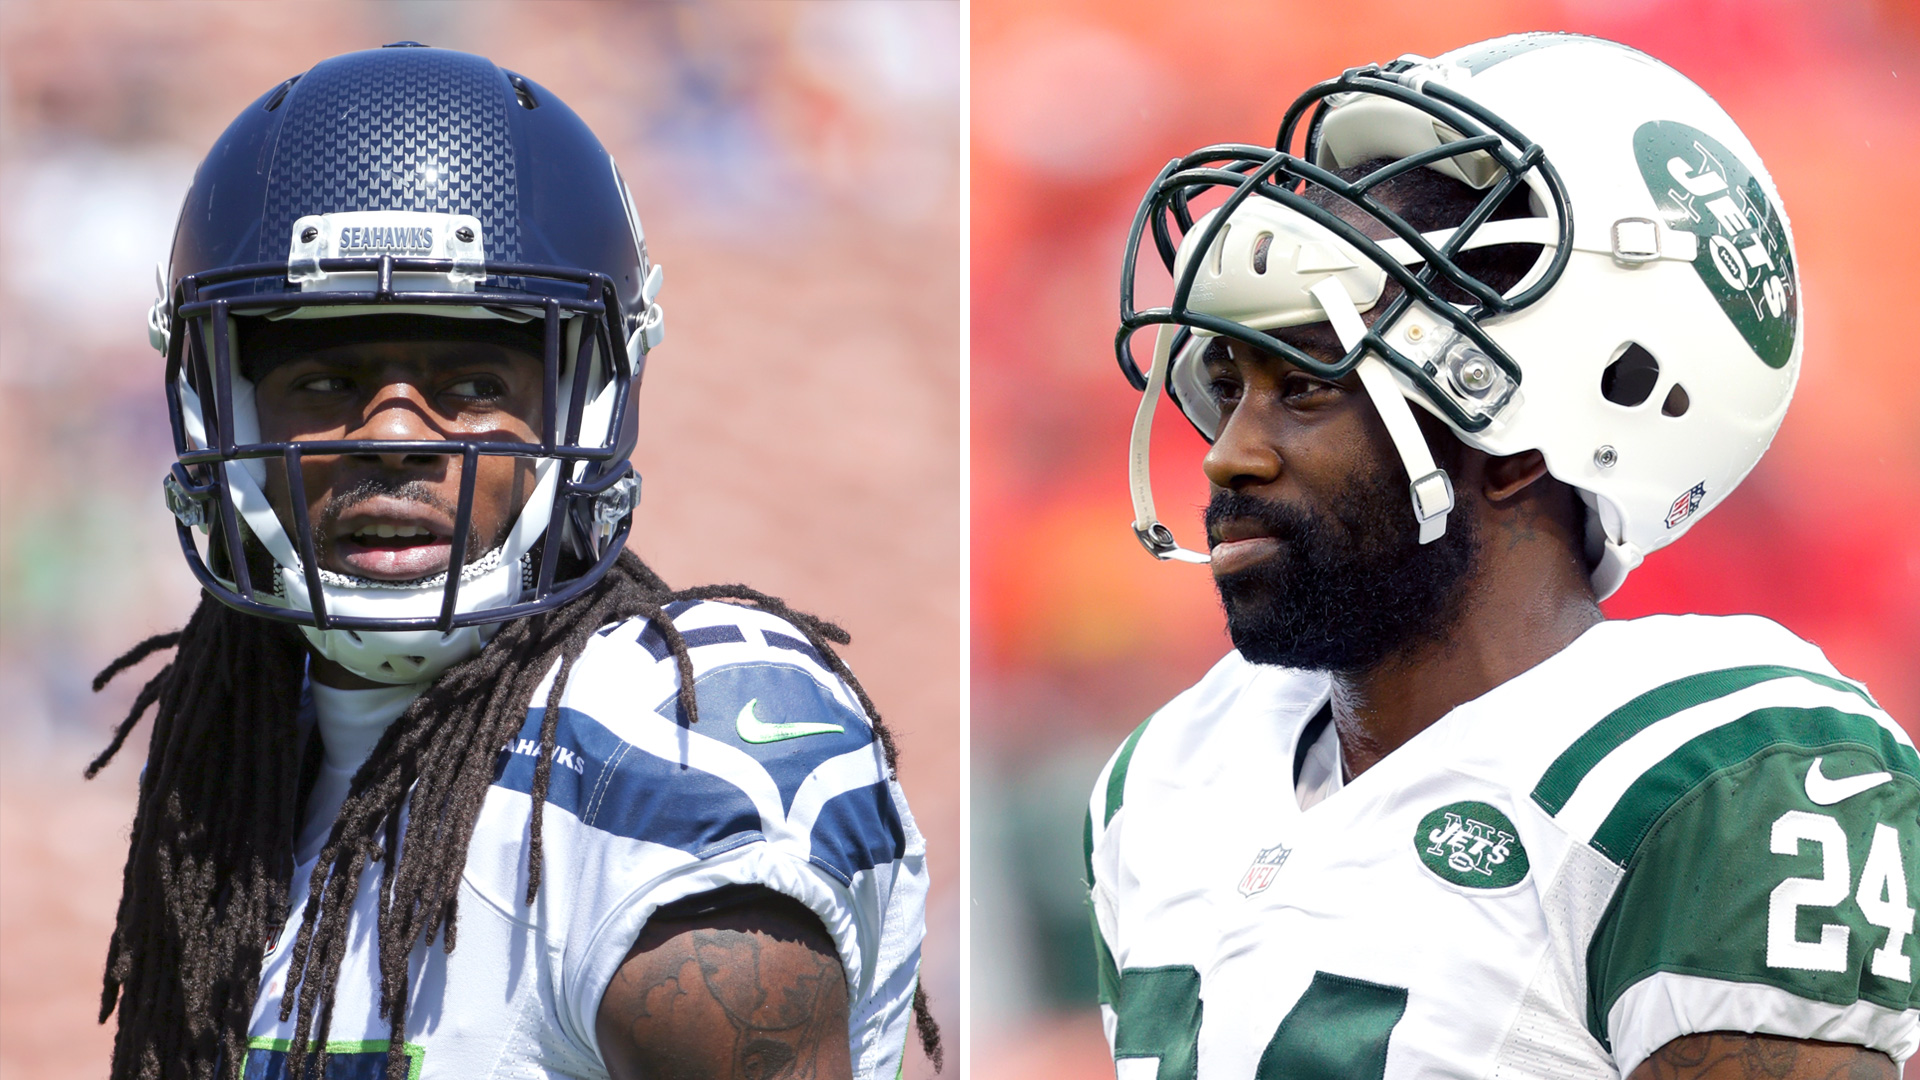 Richard-sherman-darrelle-revis-092916-getty-ftrjpg_wlem73et5uau1bqeyjmgqh5kj